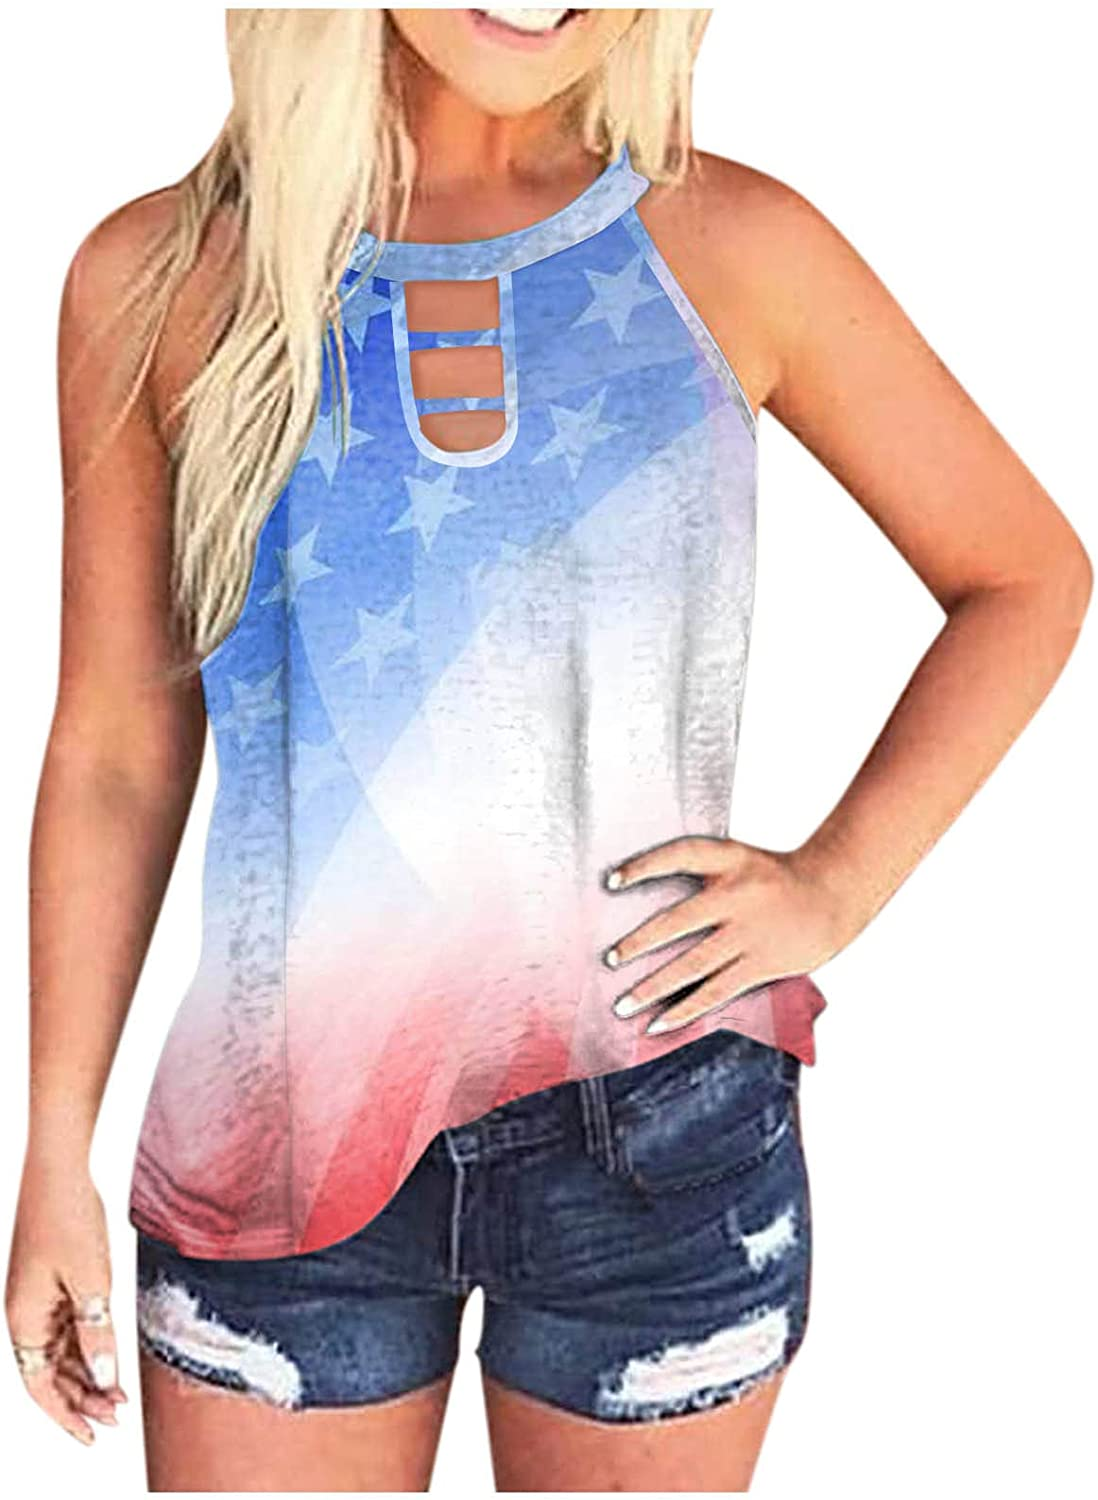 Tank Tops for Women Fashion,Women Tie Dye Tank Tops Loose Fit Sleeveless Halter Neck Casual Summer Tops Cut Out Workout Tee Shirts